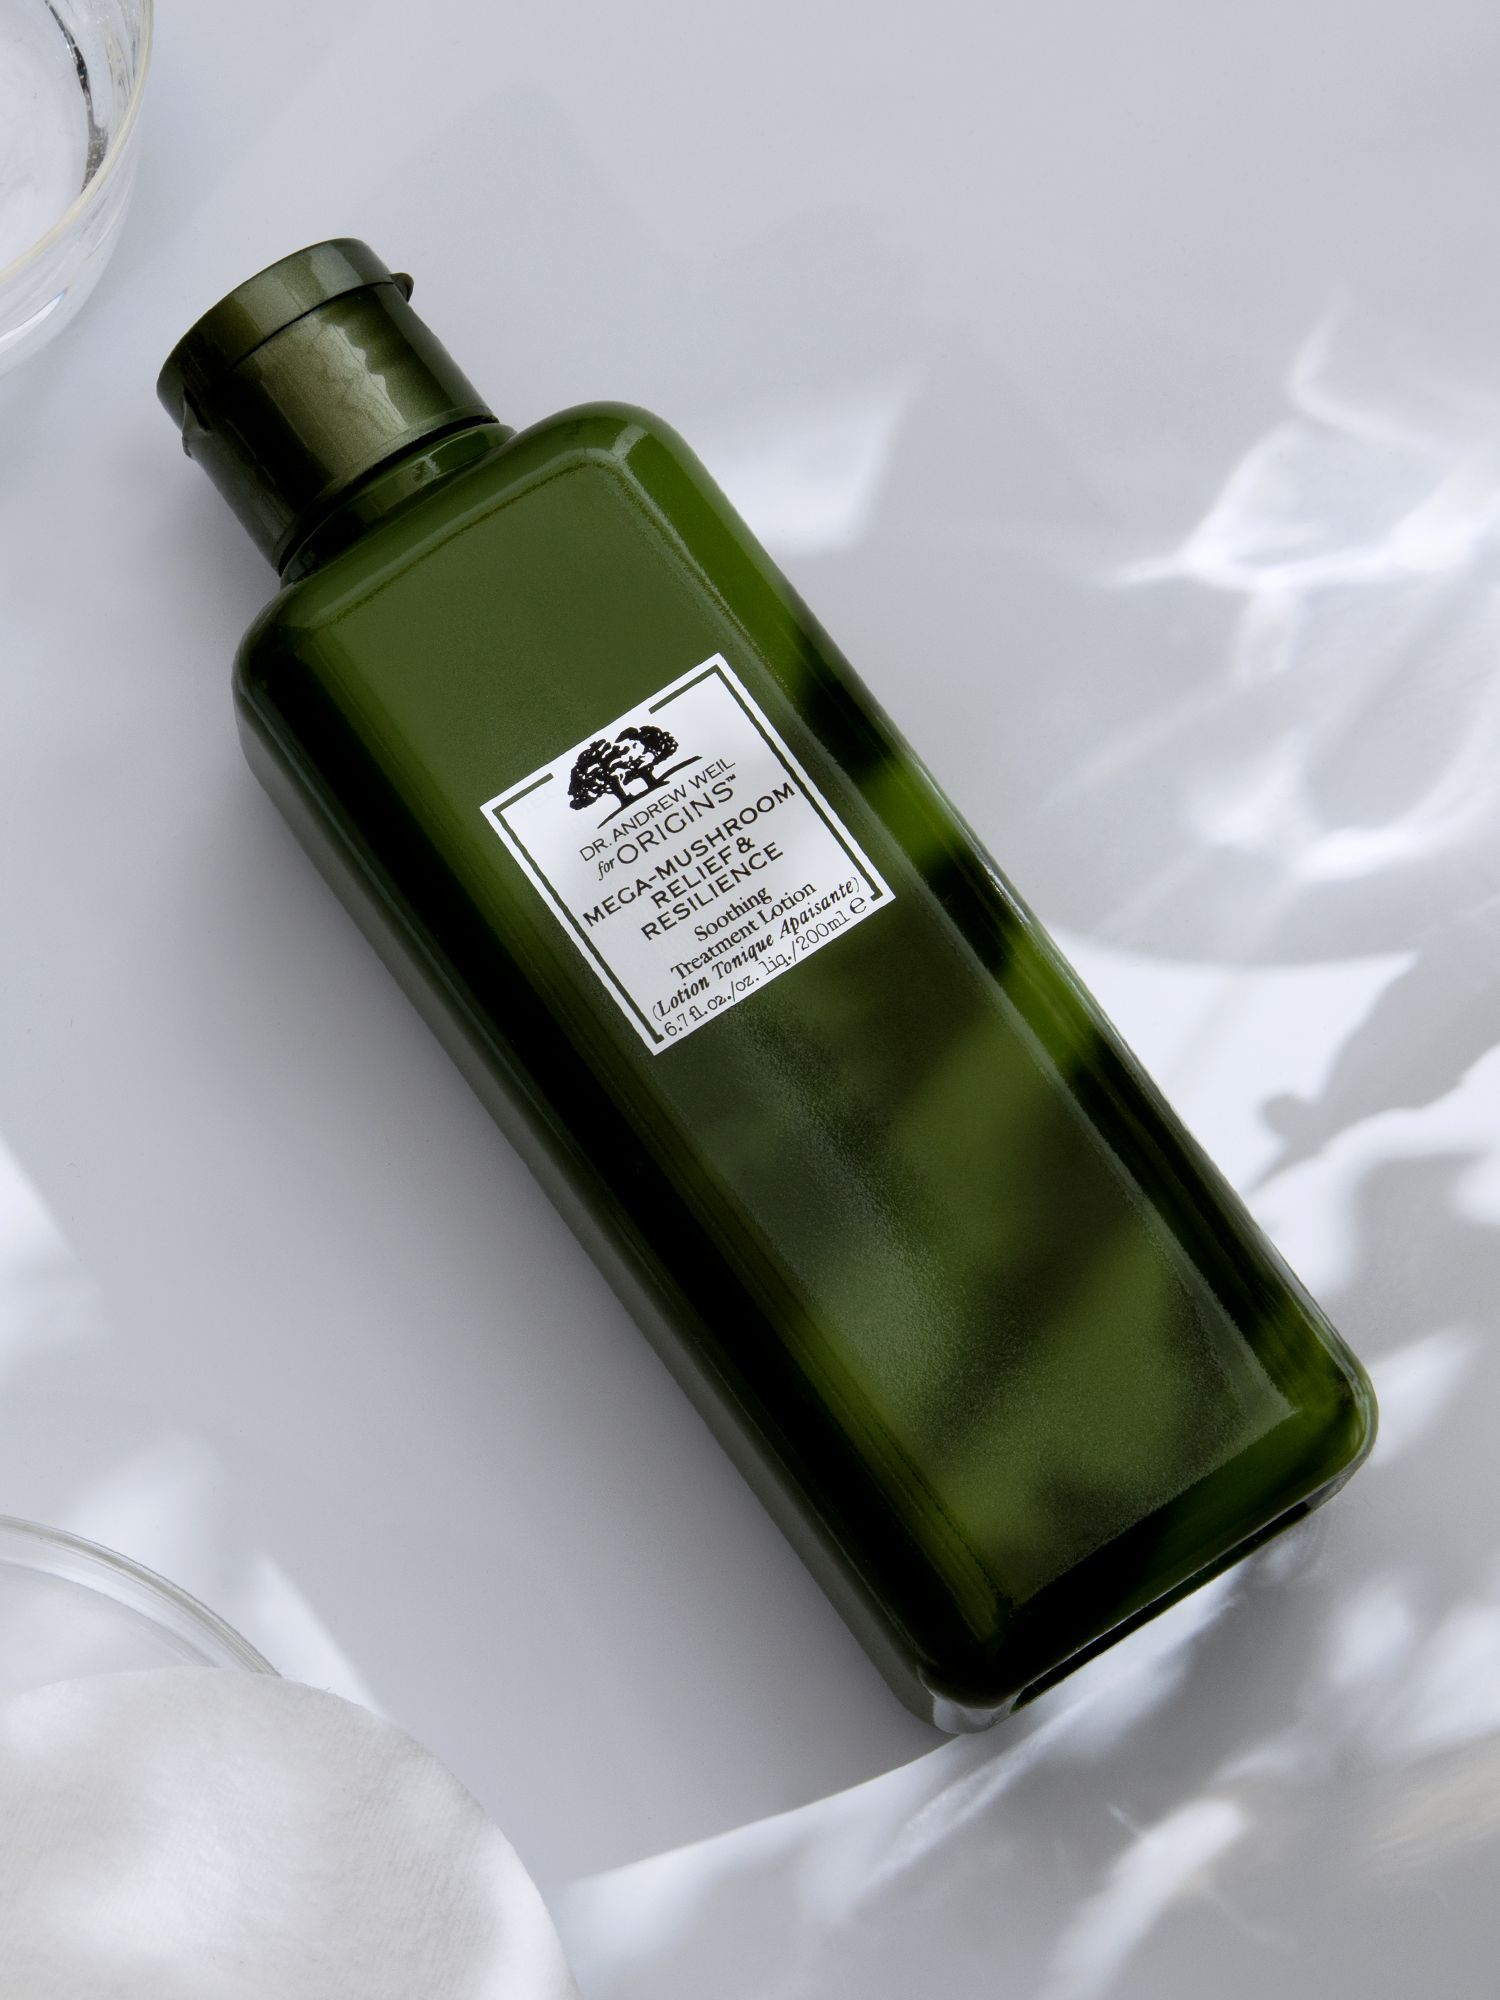 Dr. Andrew Weil for Origins Mega-Mushroom™ Relief & Resilience Soothing Treatment Lotion, 200ml